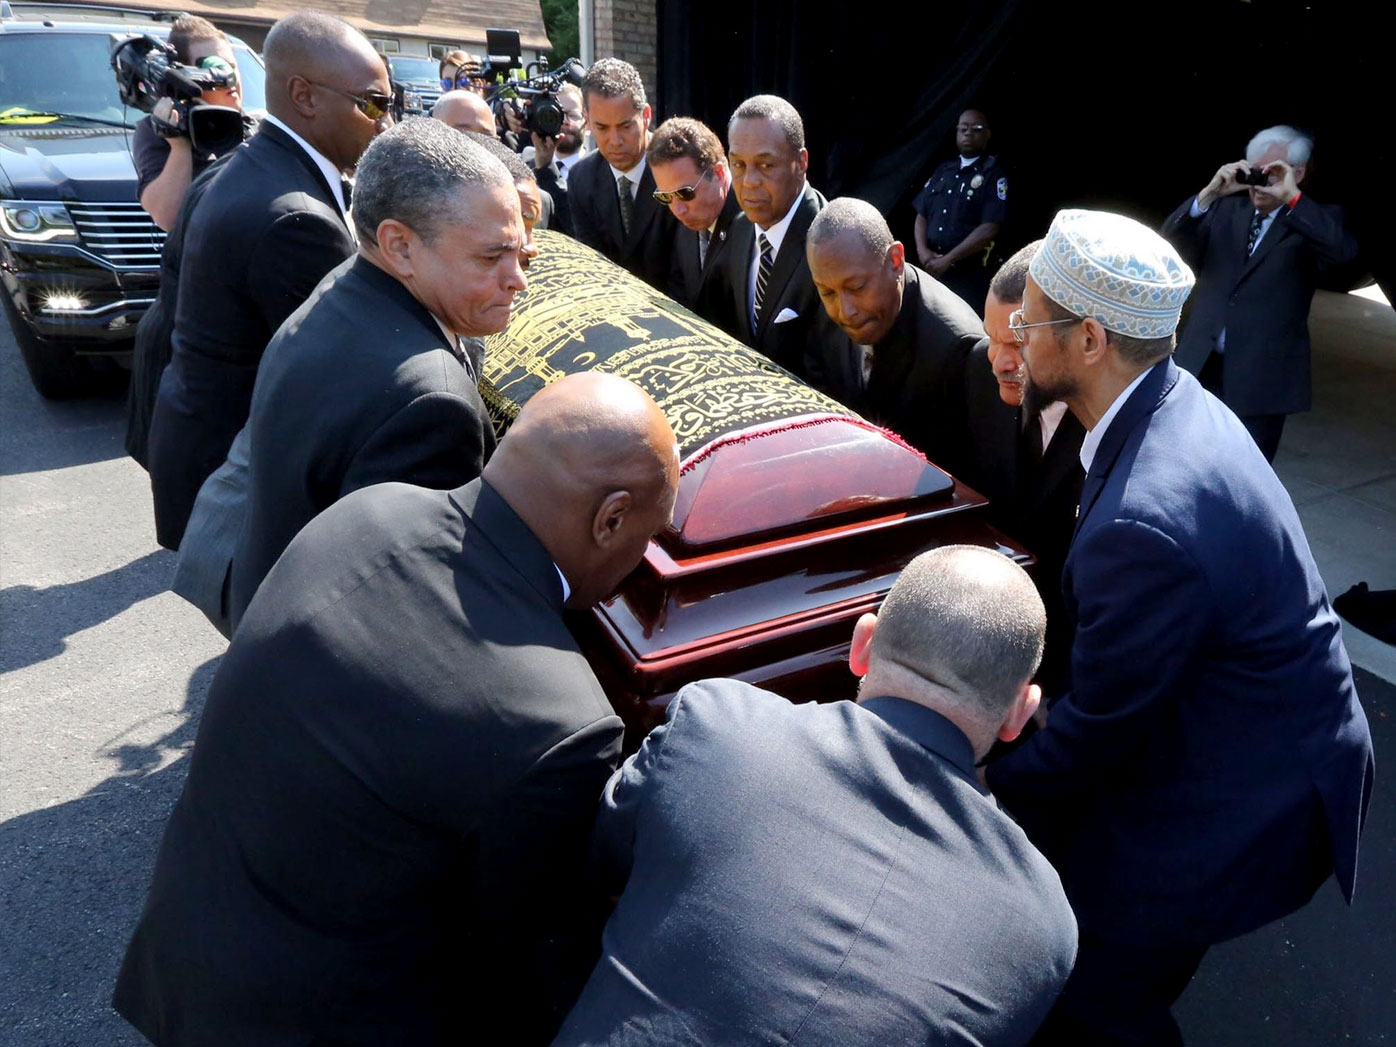 Mike Tyson is among pallbearers lifting Muhammad Ali's coffin into the hearse. (AAP)